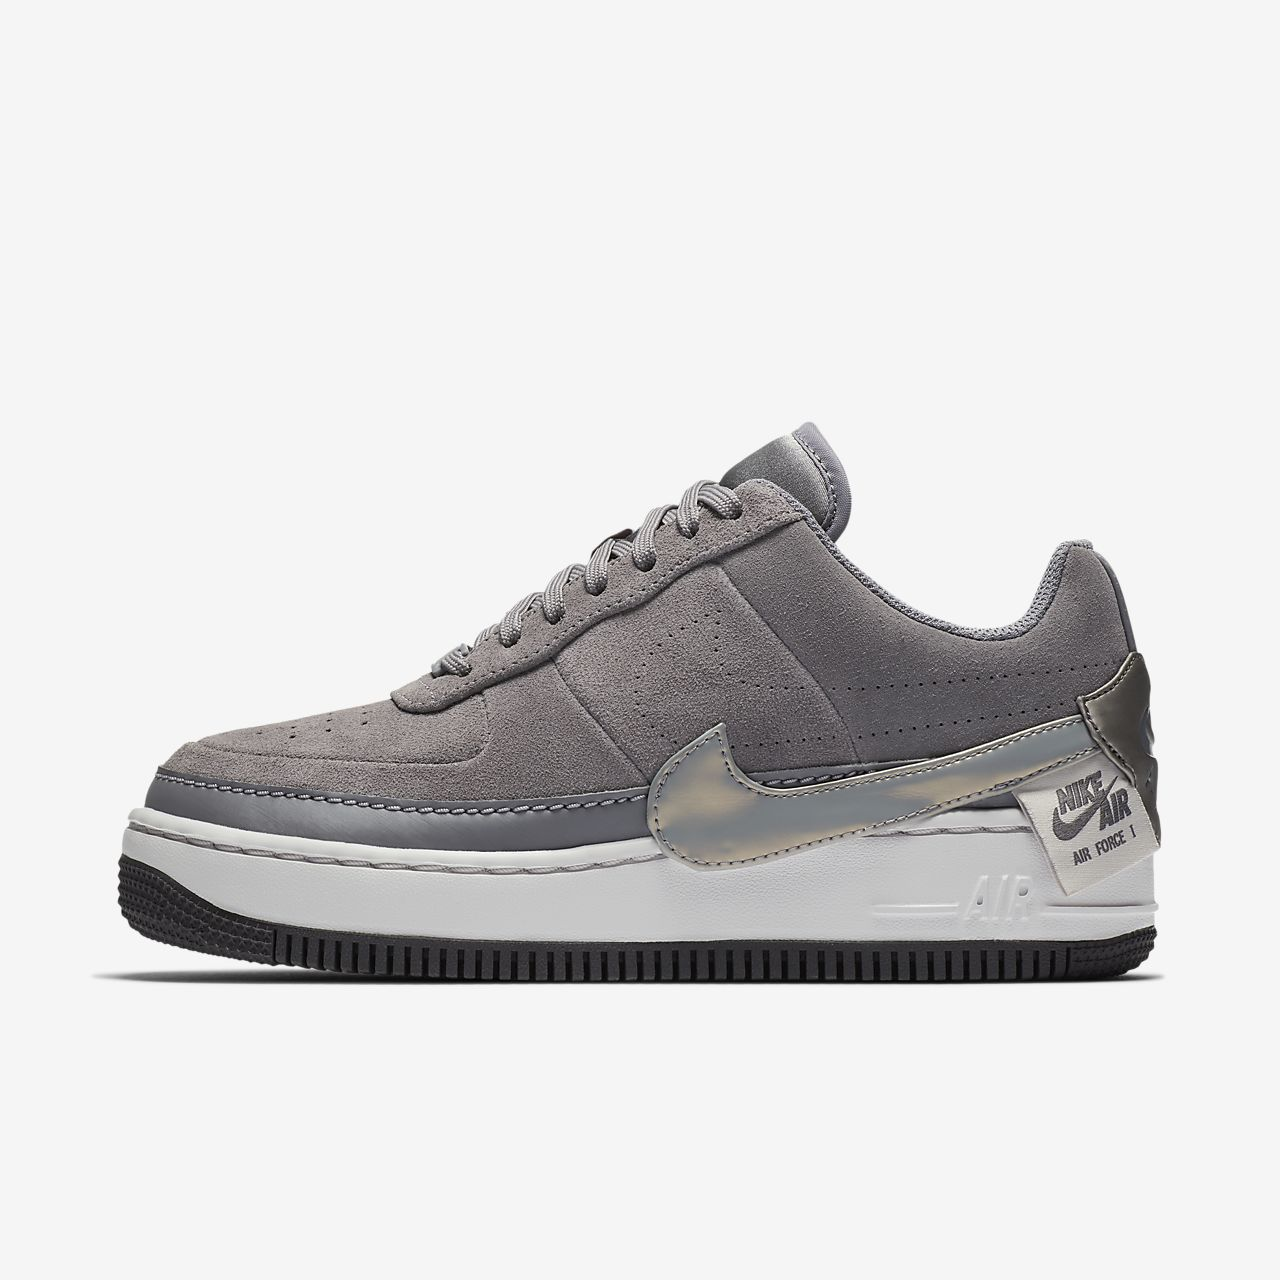 new style b44ca df6e2 Chaussure Nike Air Force 1 Jester pour Femme